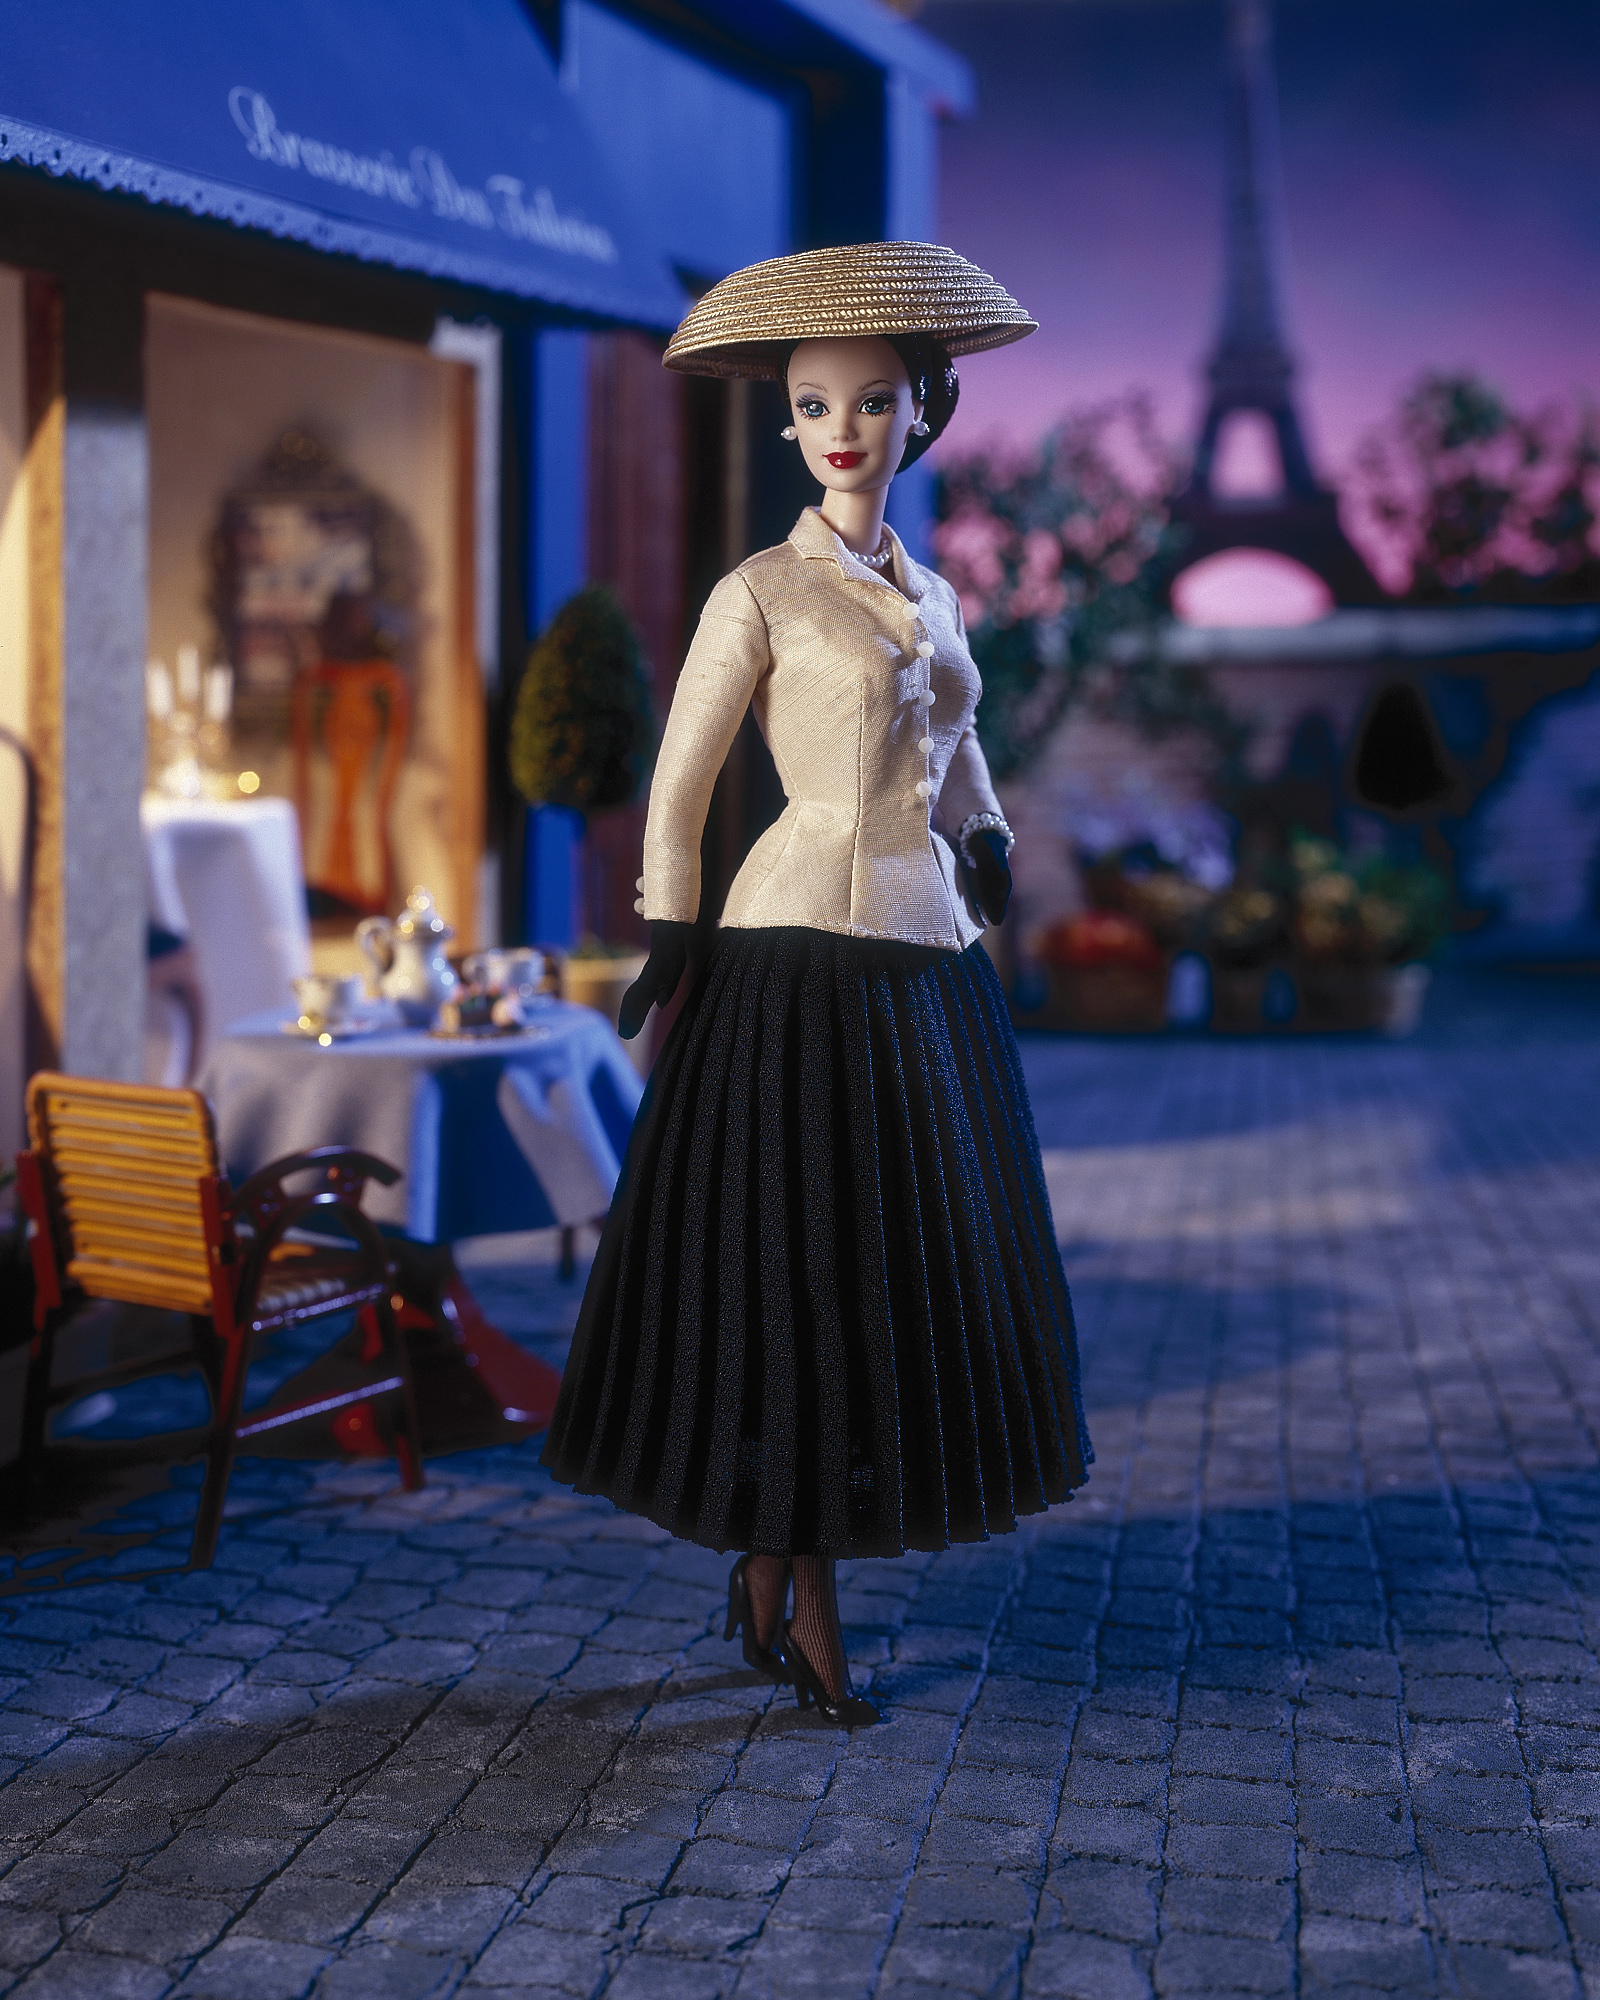 The Christian Dior Barbie Doll, released in 1997.